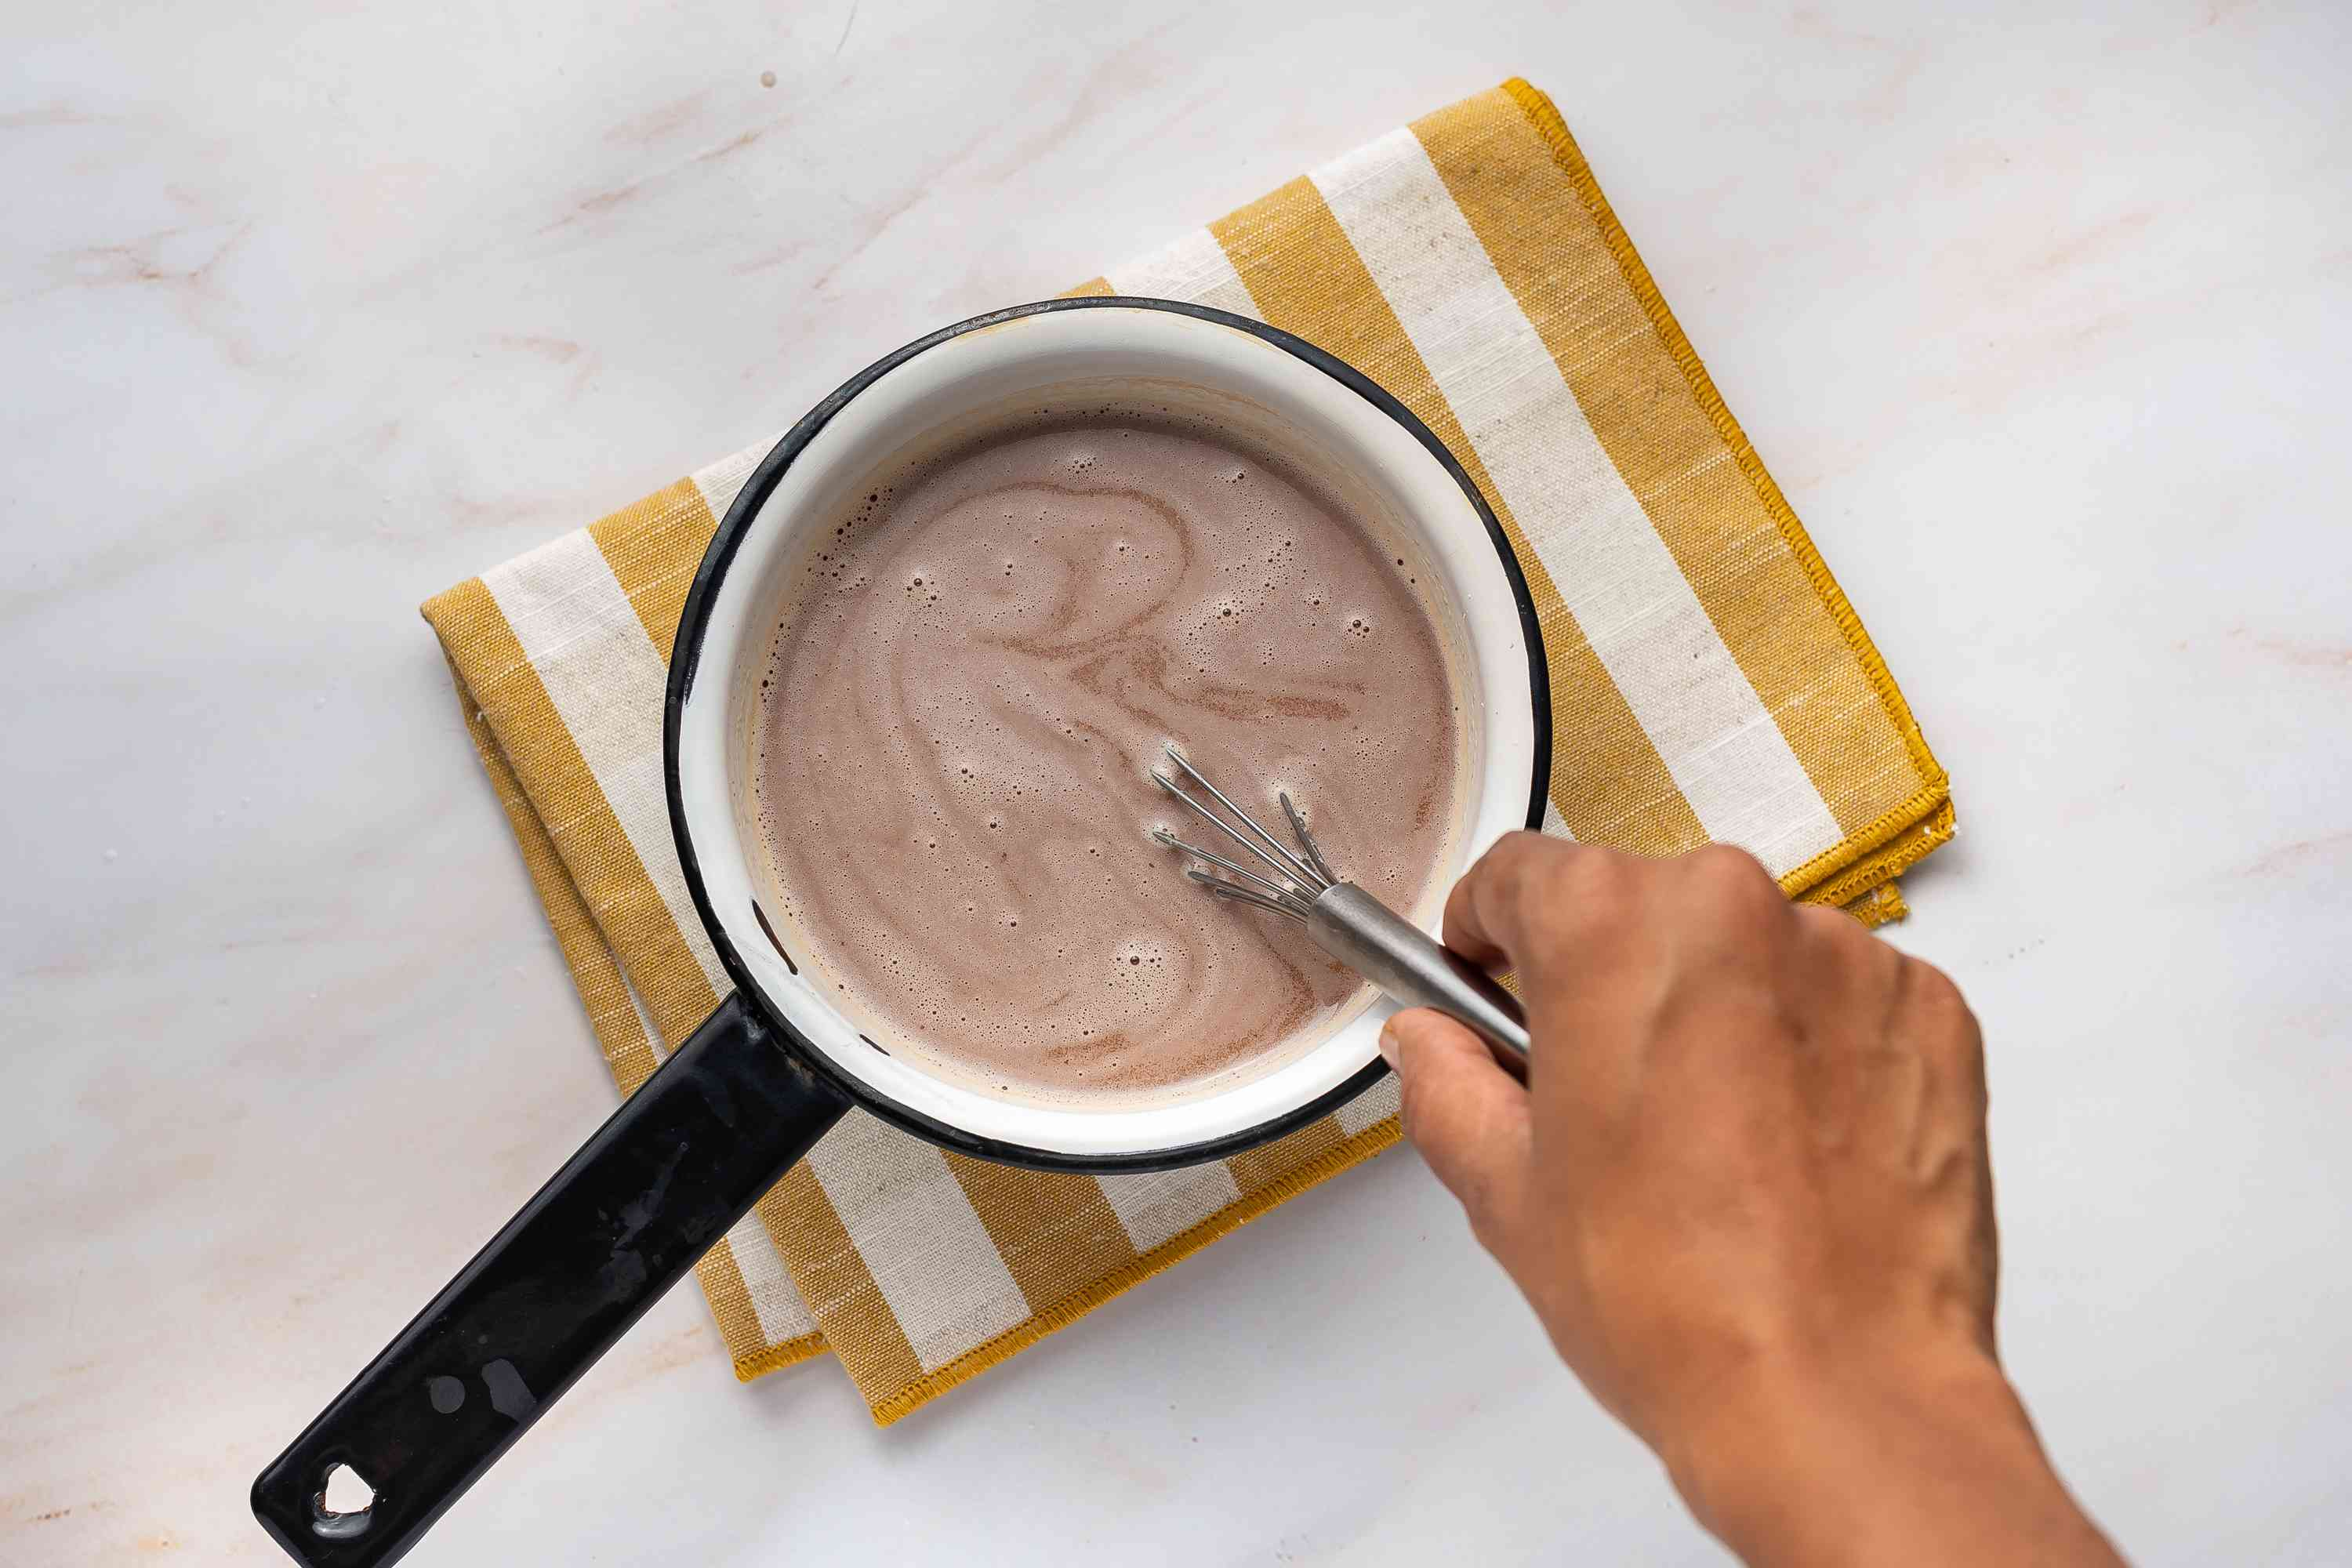 Chocolate added to the milk mixture in the saucepan